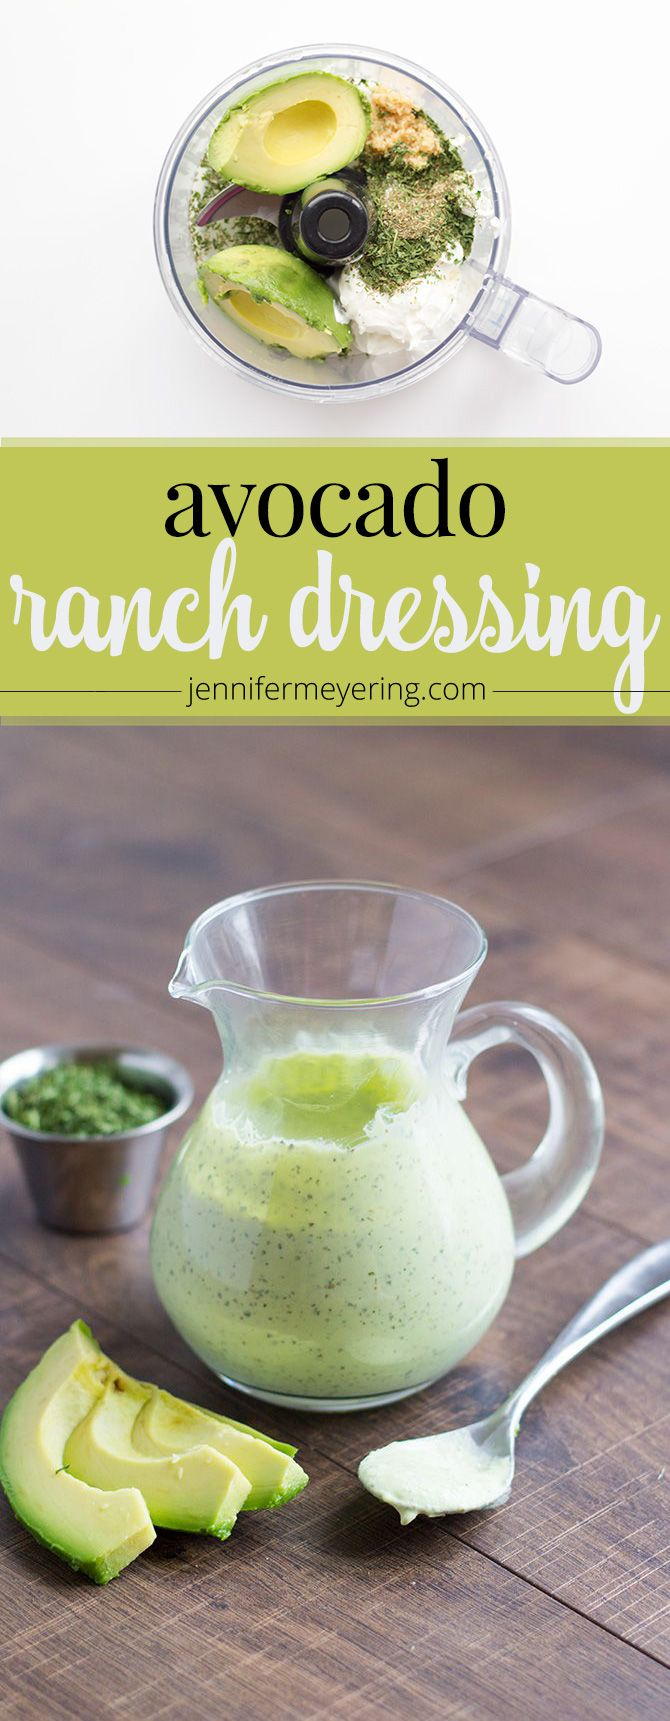 Avocado Ranch Dressing - JenniferMeyering.com (Ketogenic Recipes Avocado)